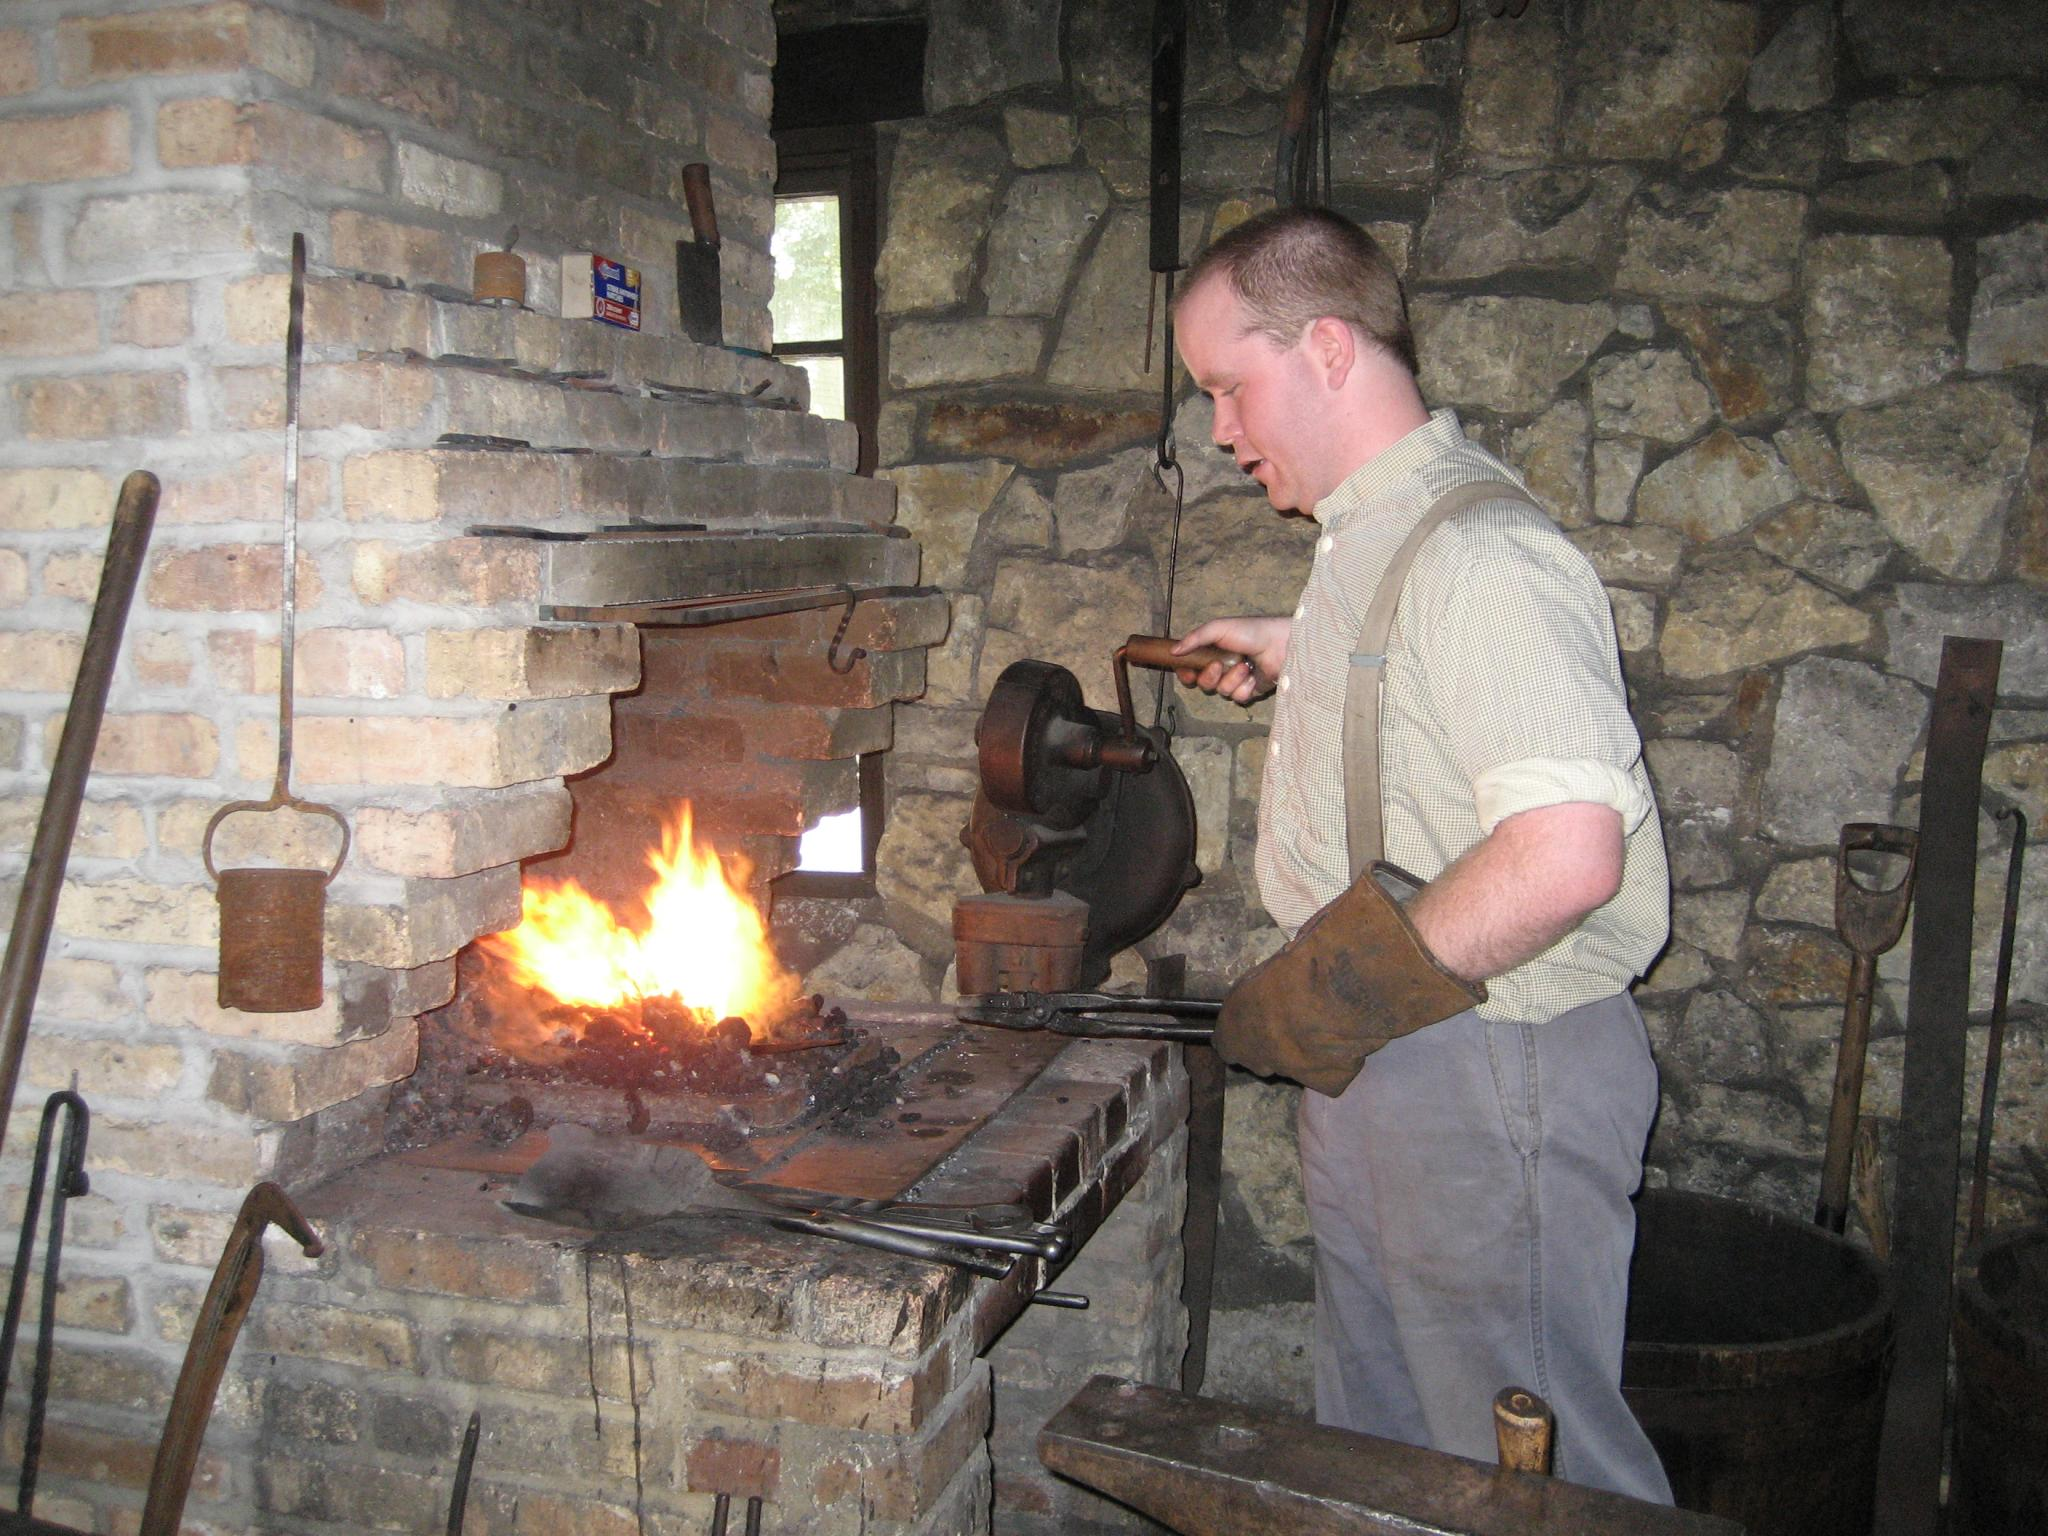 Blacksmith using forge in Blacksmith Shop